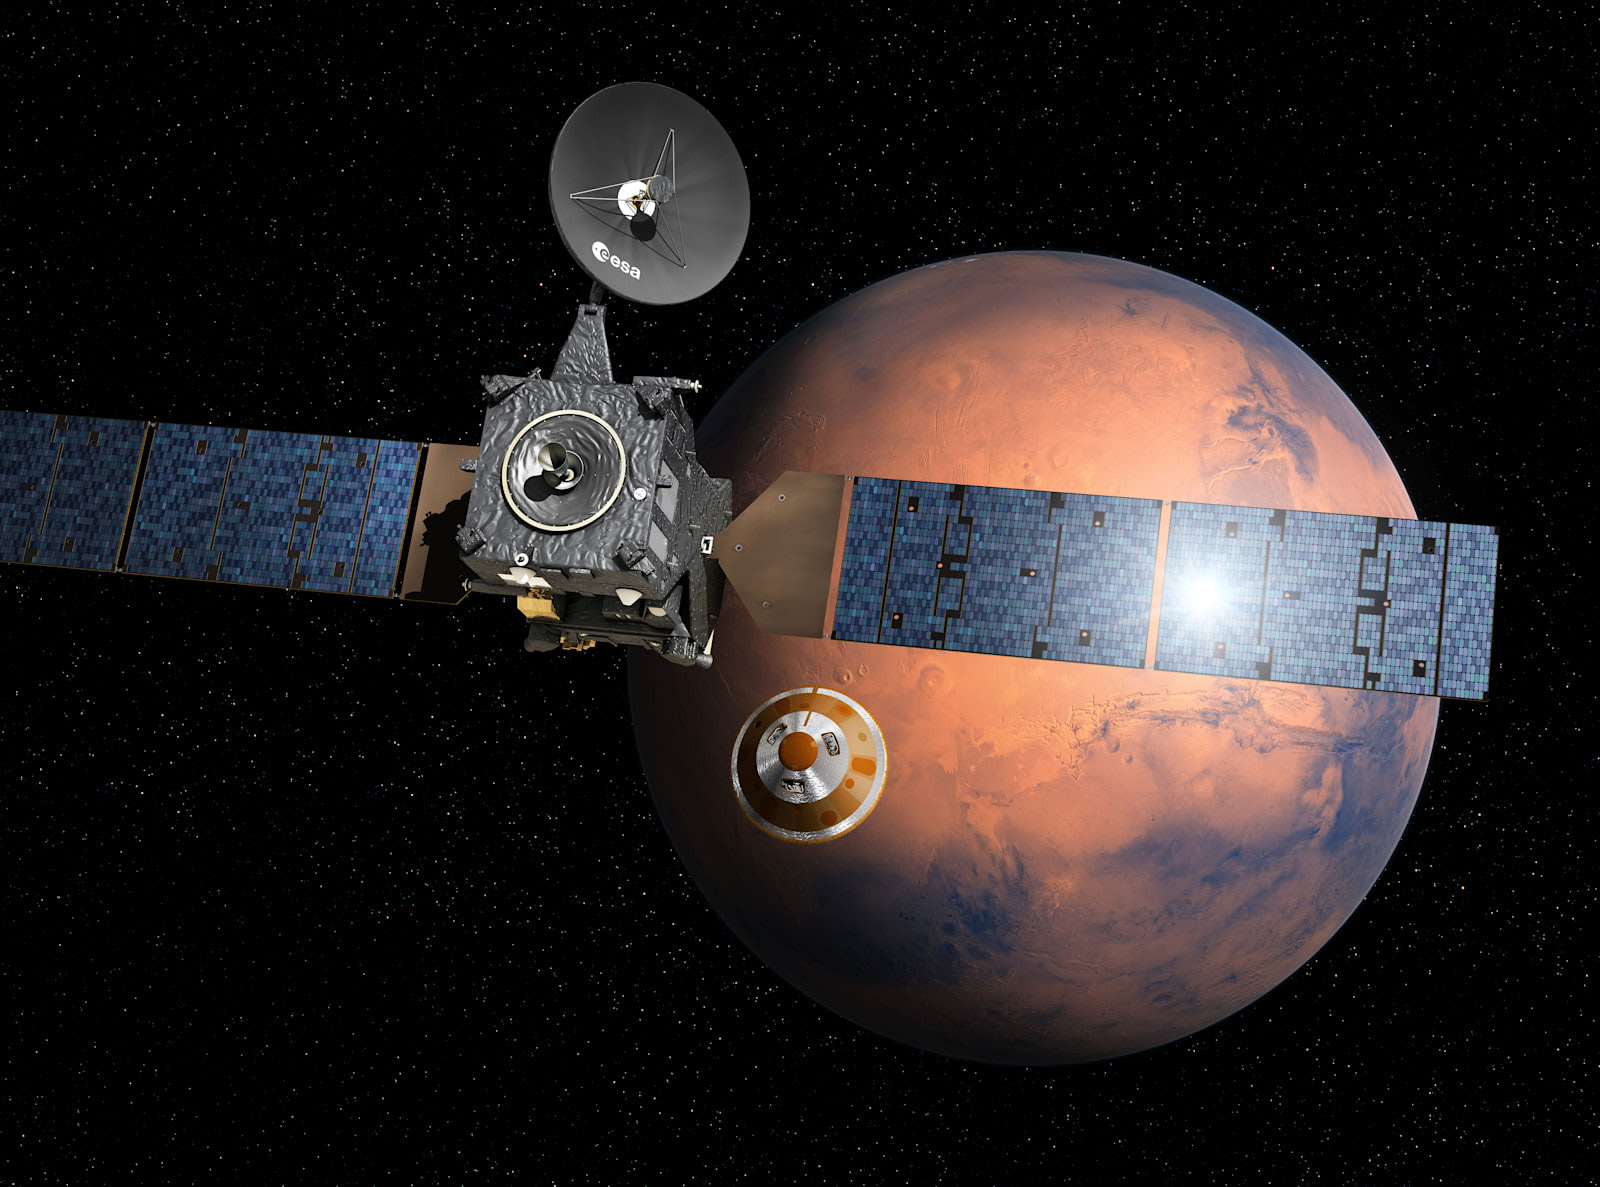 NASA finds likely crash site for ESA's ExoMars probe